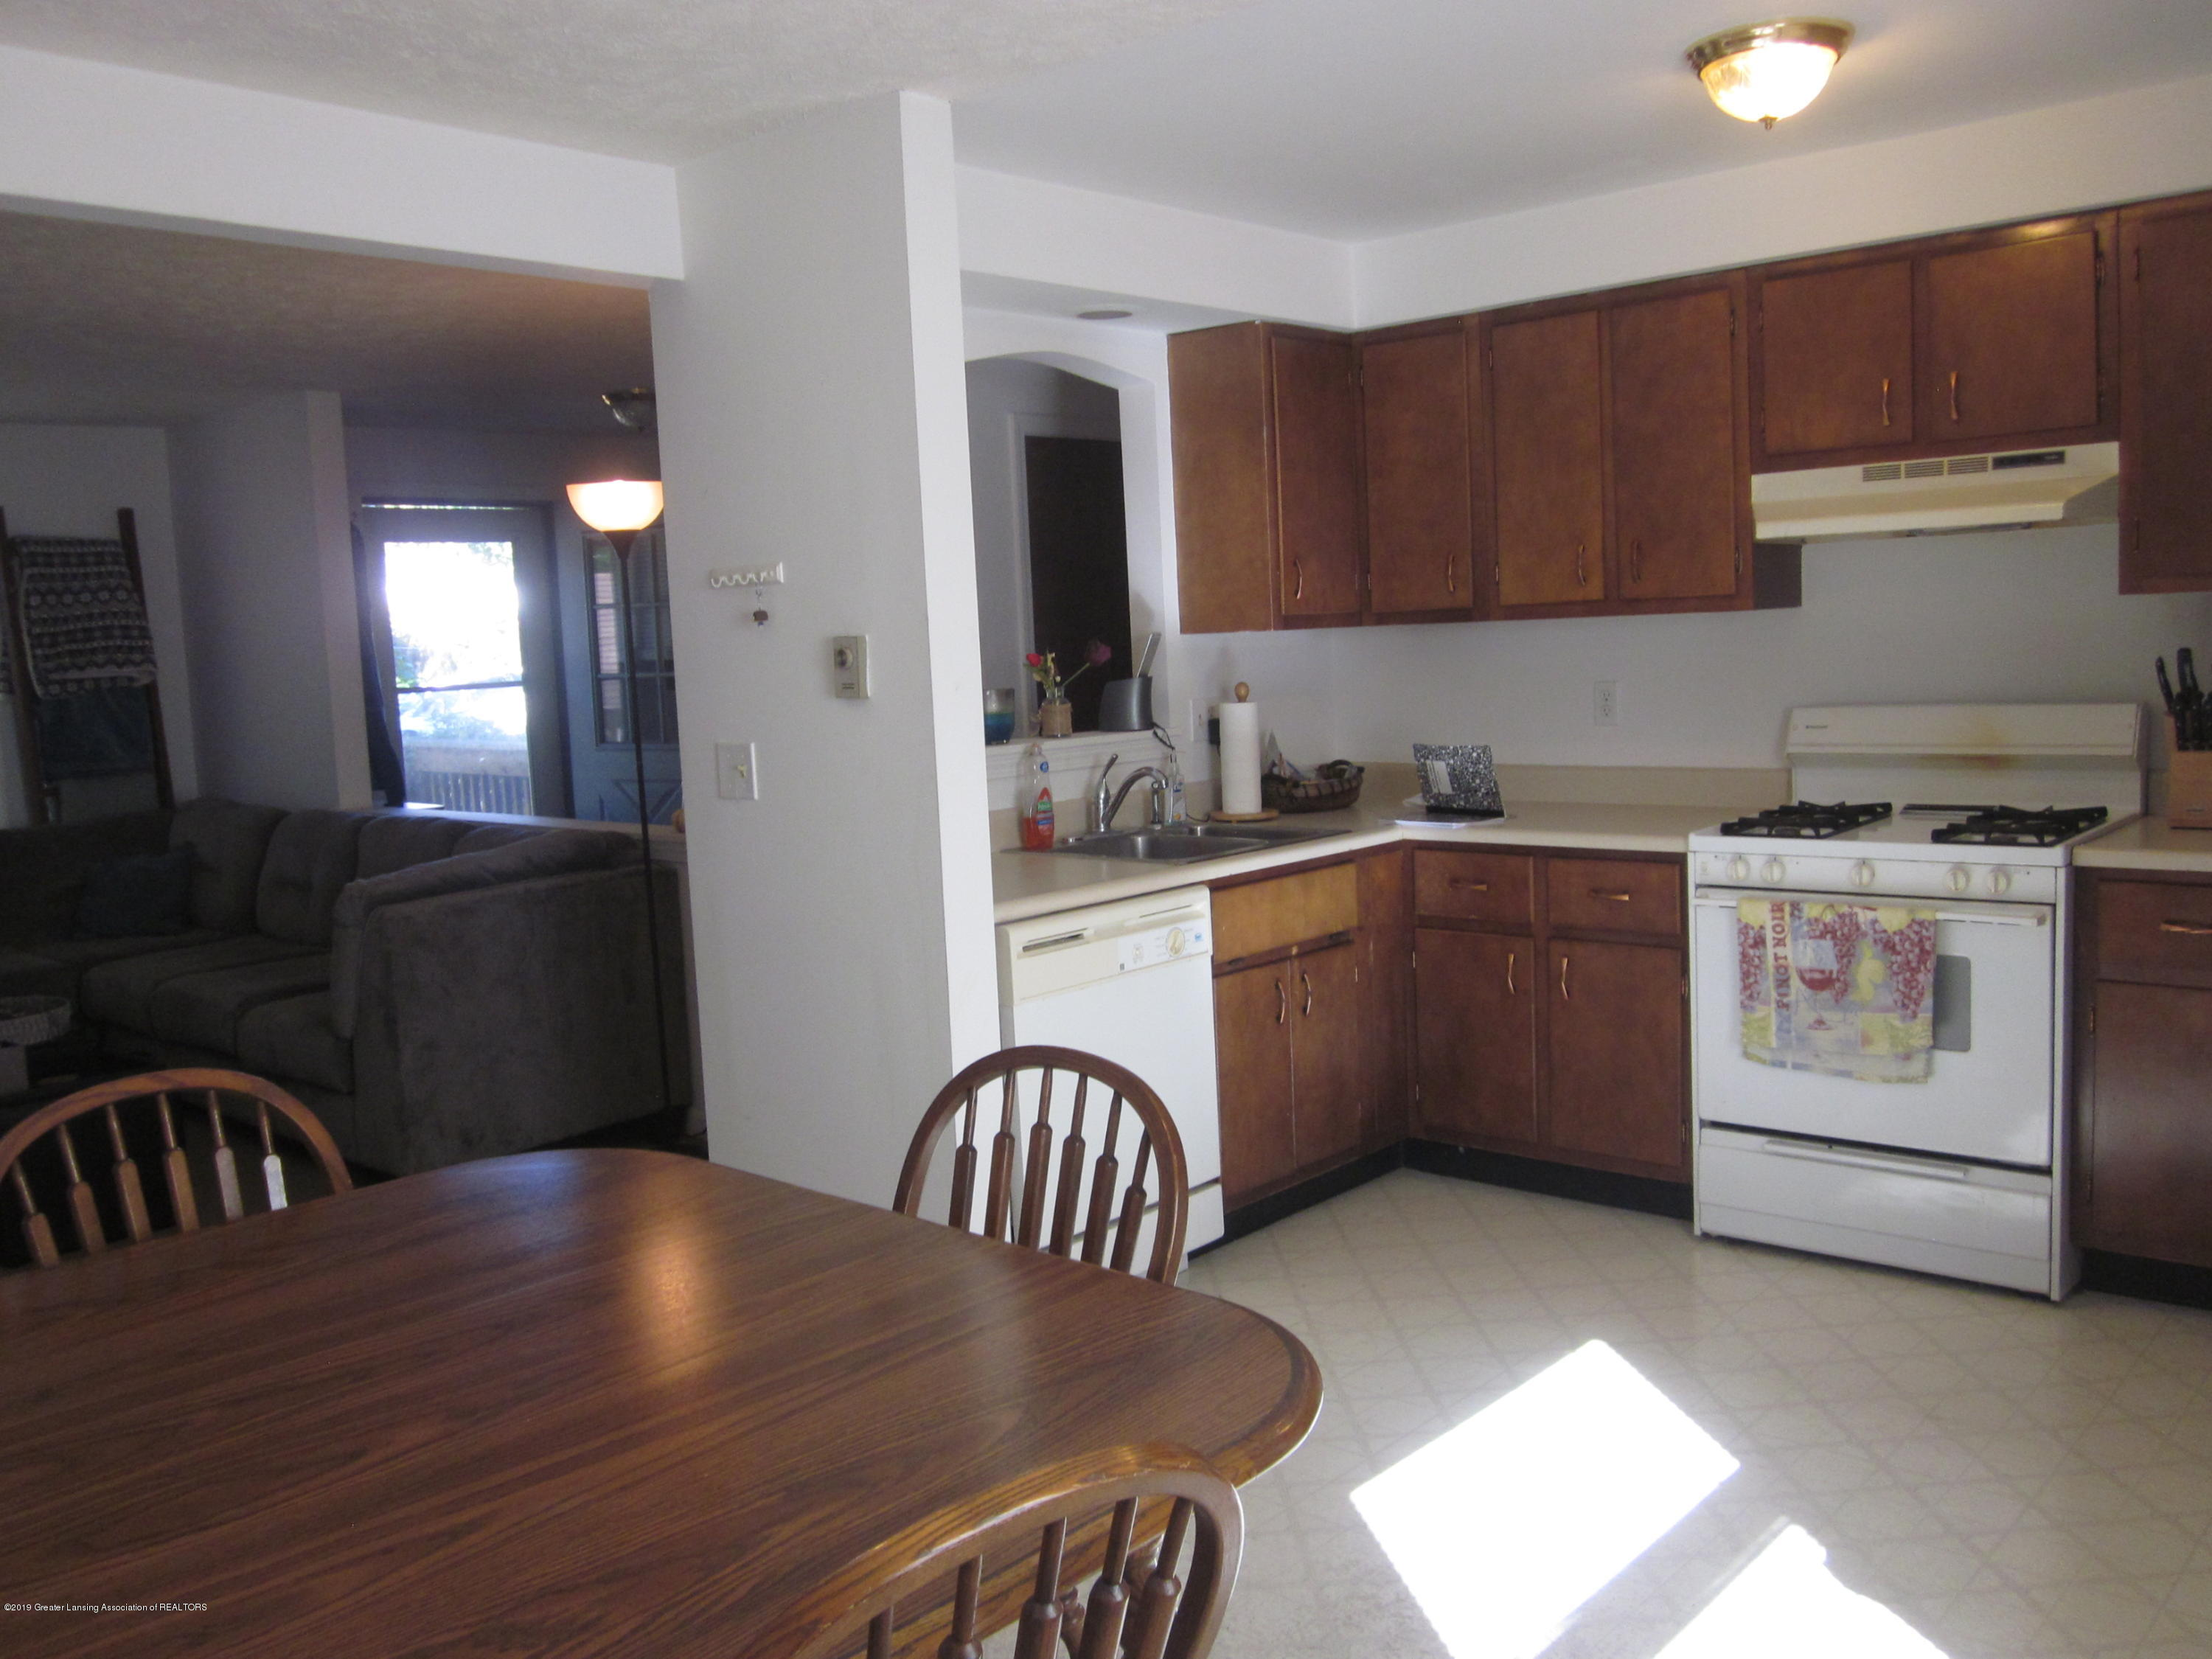 535 S Magnolia Ave - Kitchen - 4